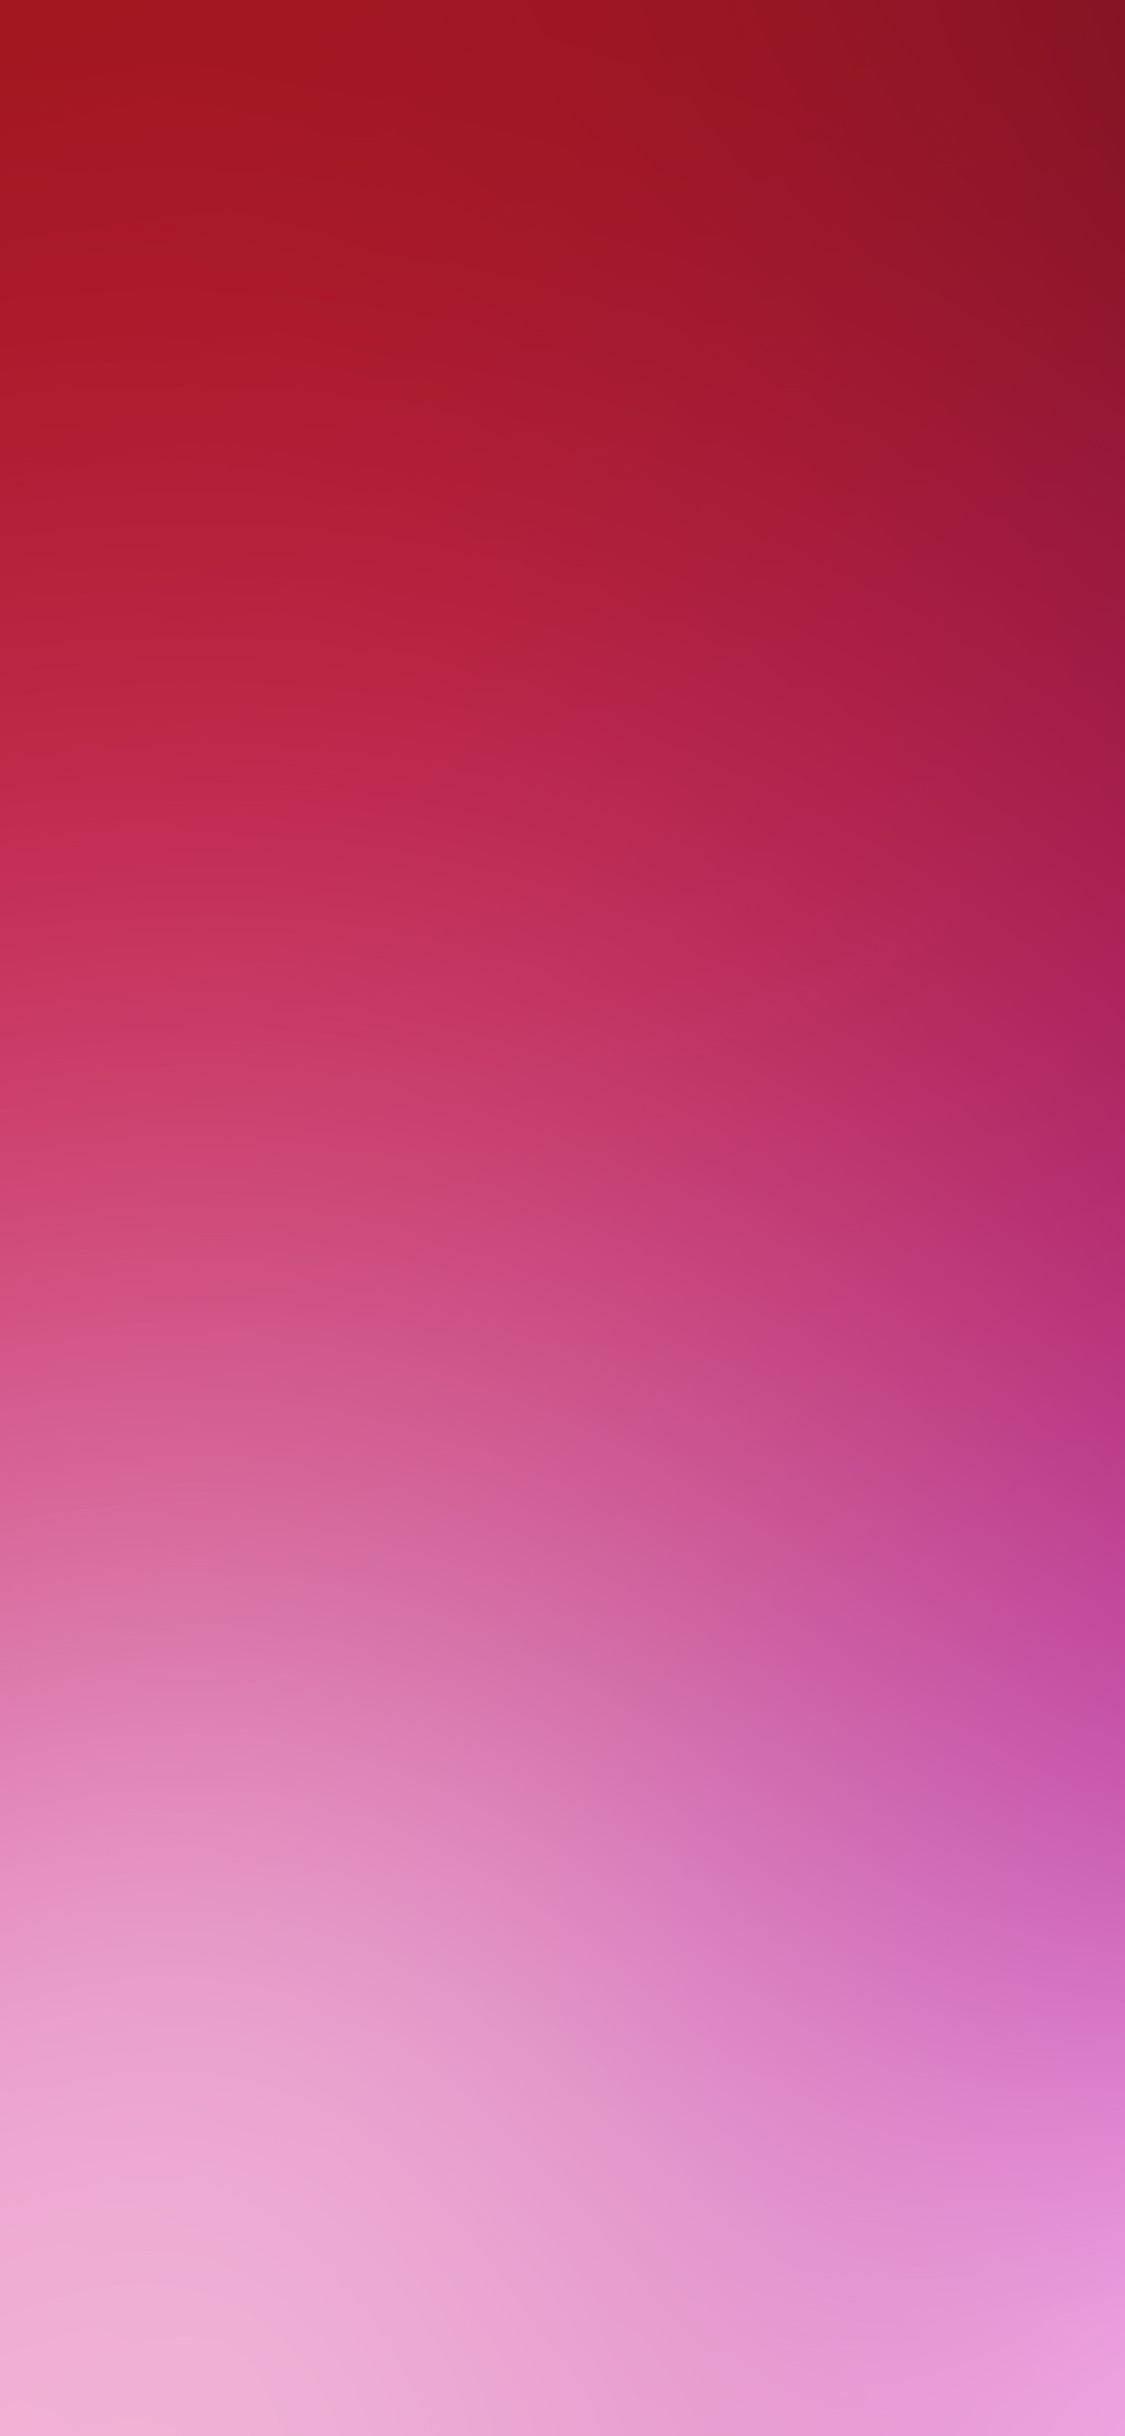 iPhoneXpapers.com-Apple-iPhone-wallpaper-sf80-red-shiny-hot-summer-burn-gradation-blur